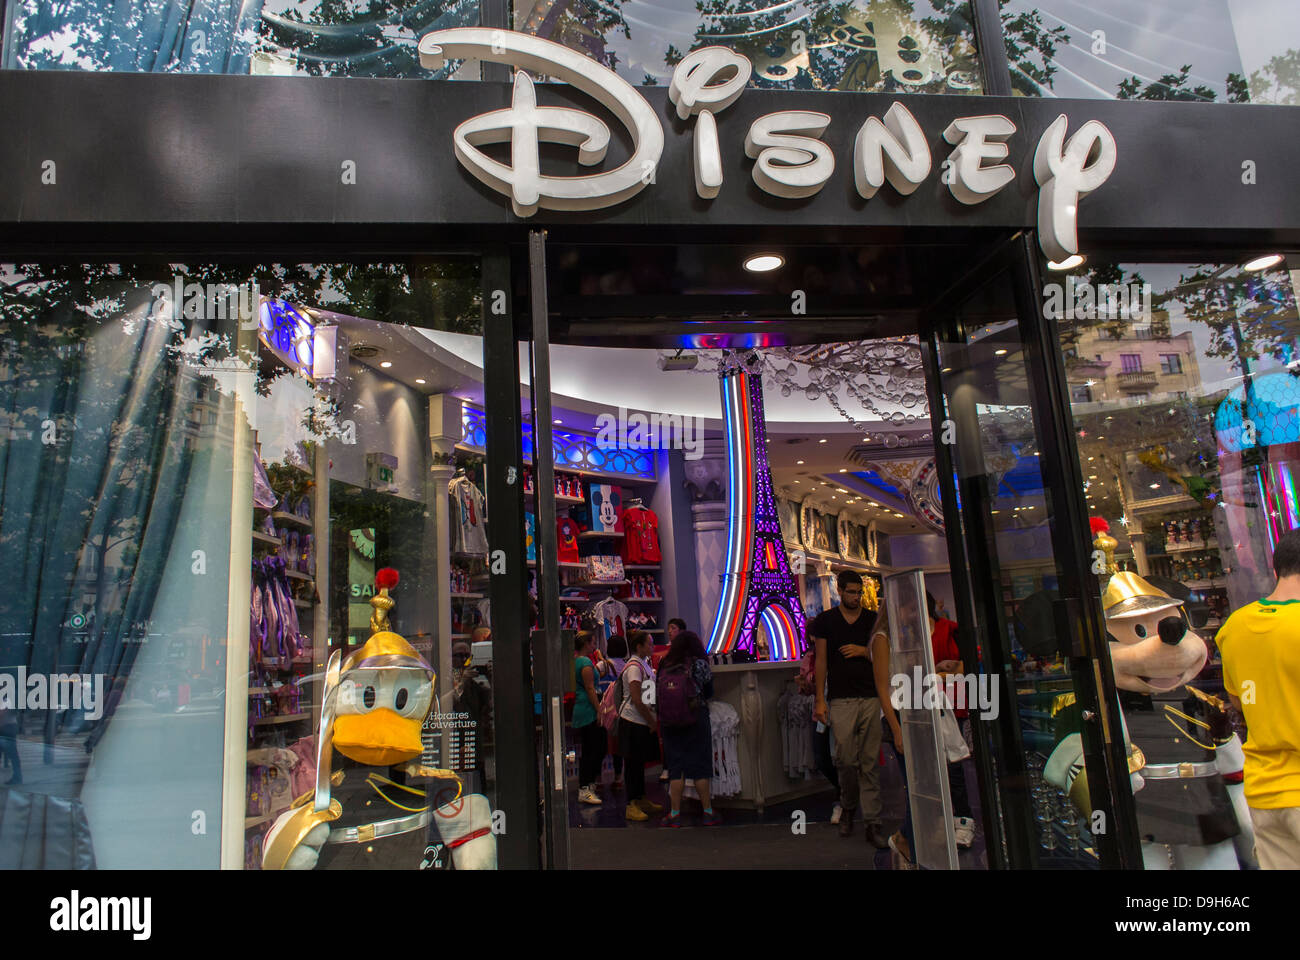 paris france shop front at the disney store on the avenue stock photo royalty free image. Black Bedroom Furniture Sets. Home Design Ideas